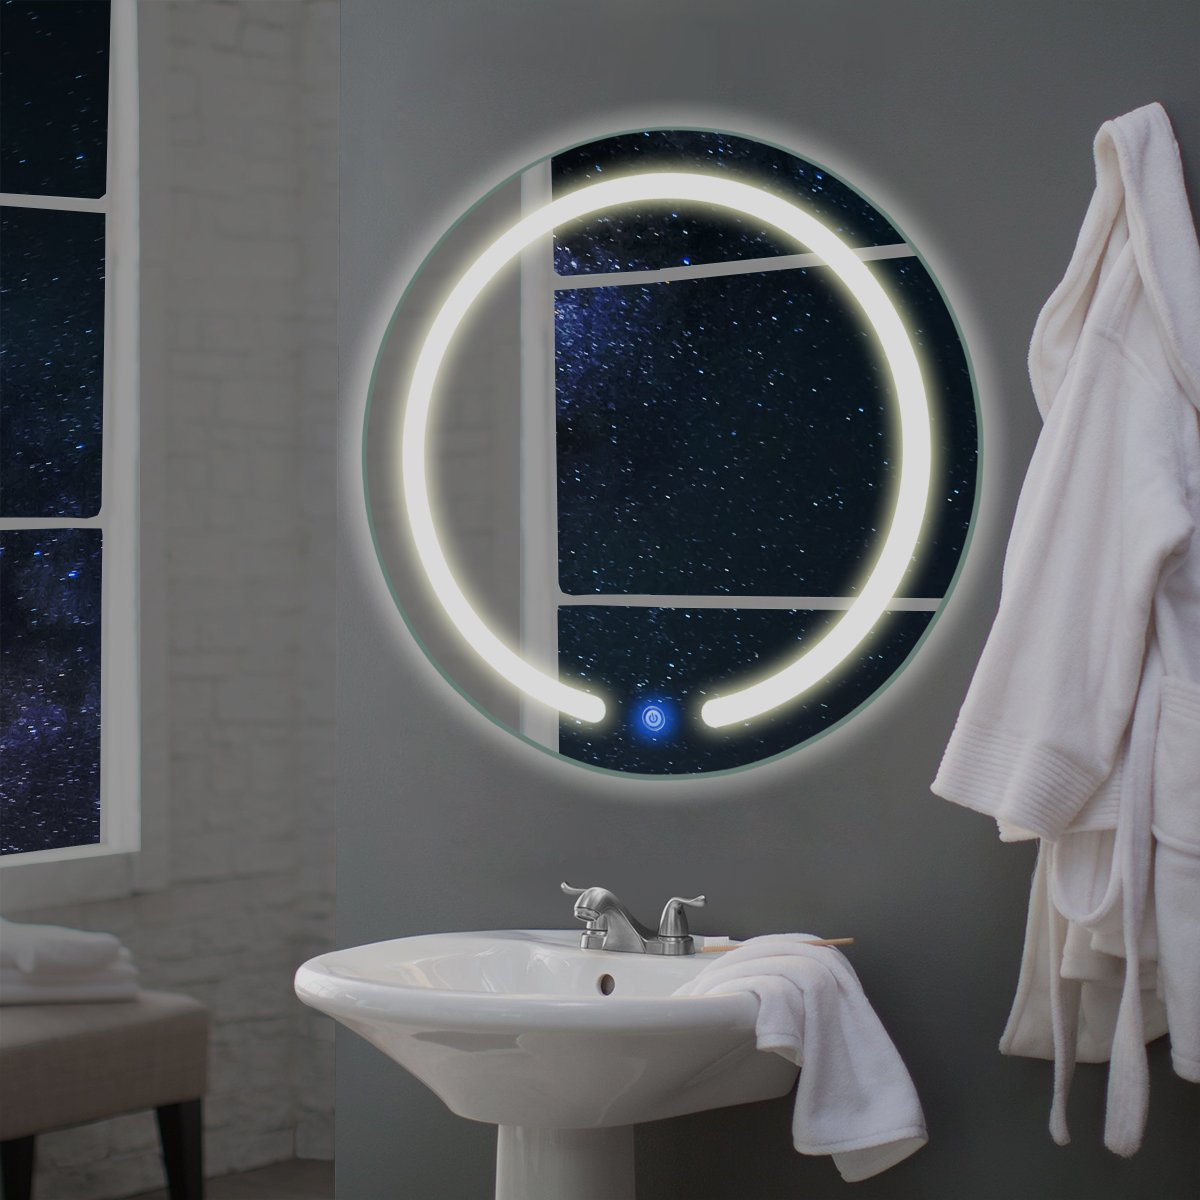 "TANGKULA 20"" LED Mirror Round Wall Mount Lighted Mirror Bathroom Bedroom Home Furniture Illuminated Vanity Make Up Lamp Wall Mounted Mirror with Touch Button (20"")"